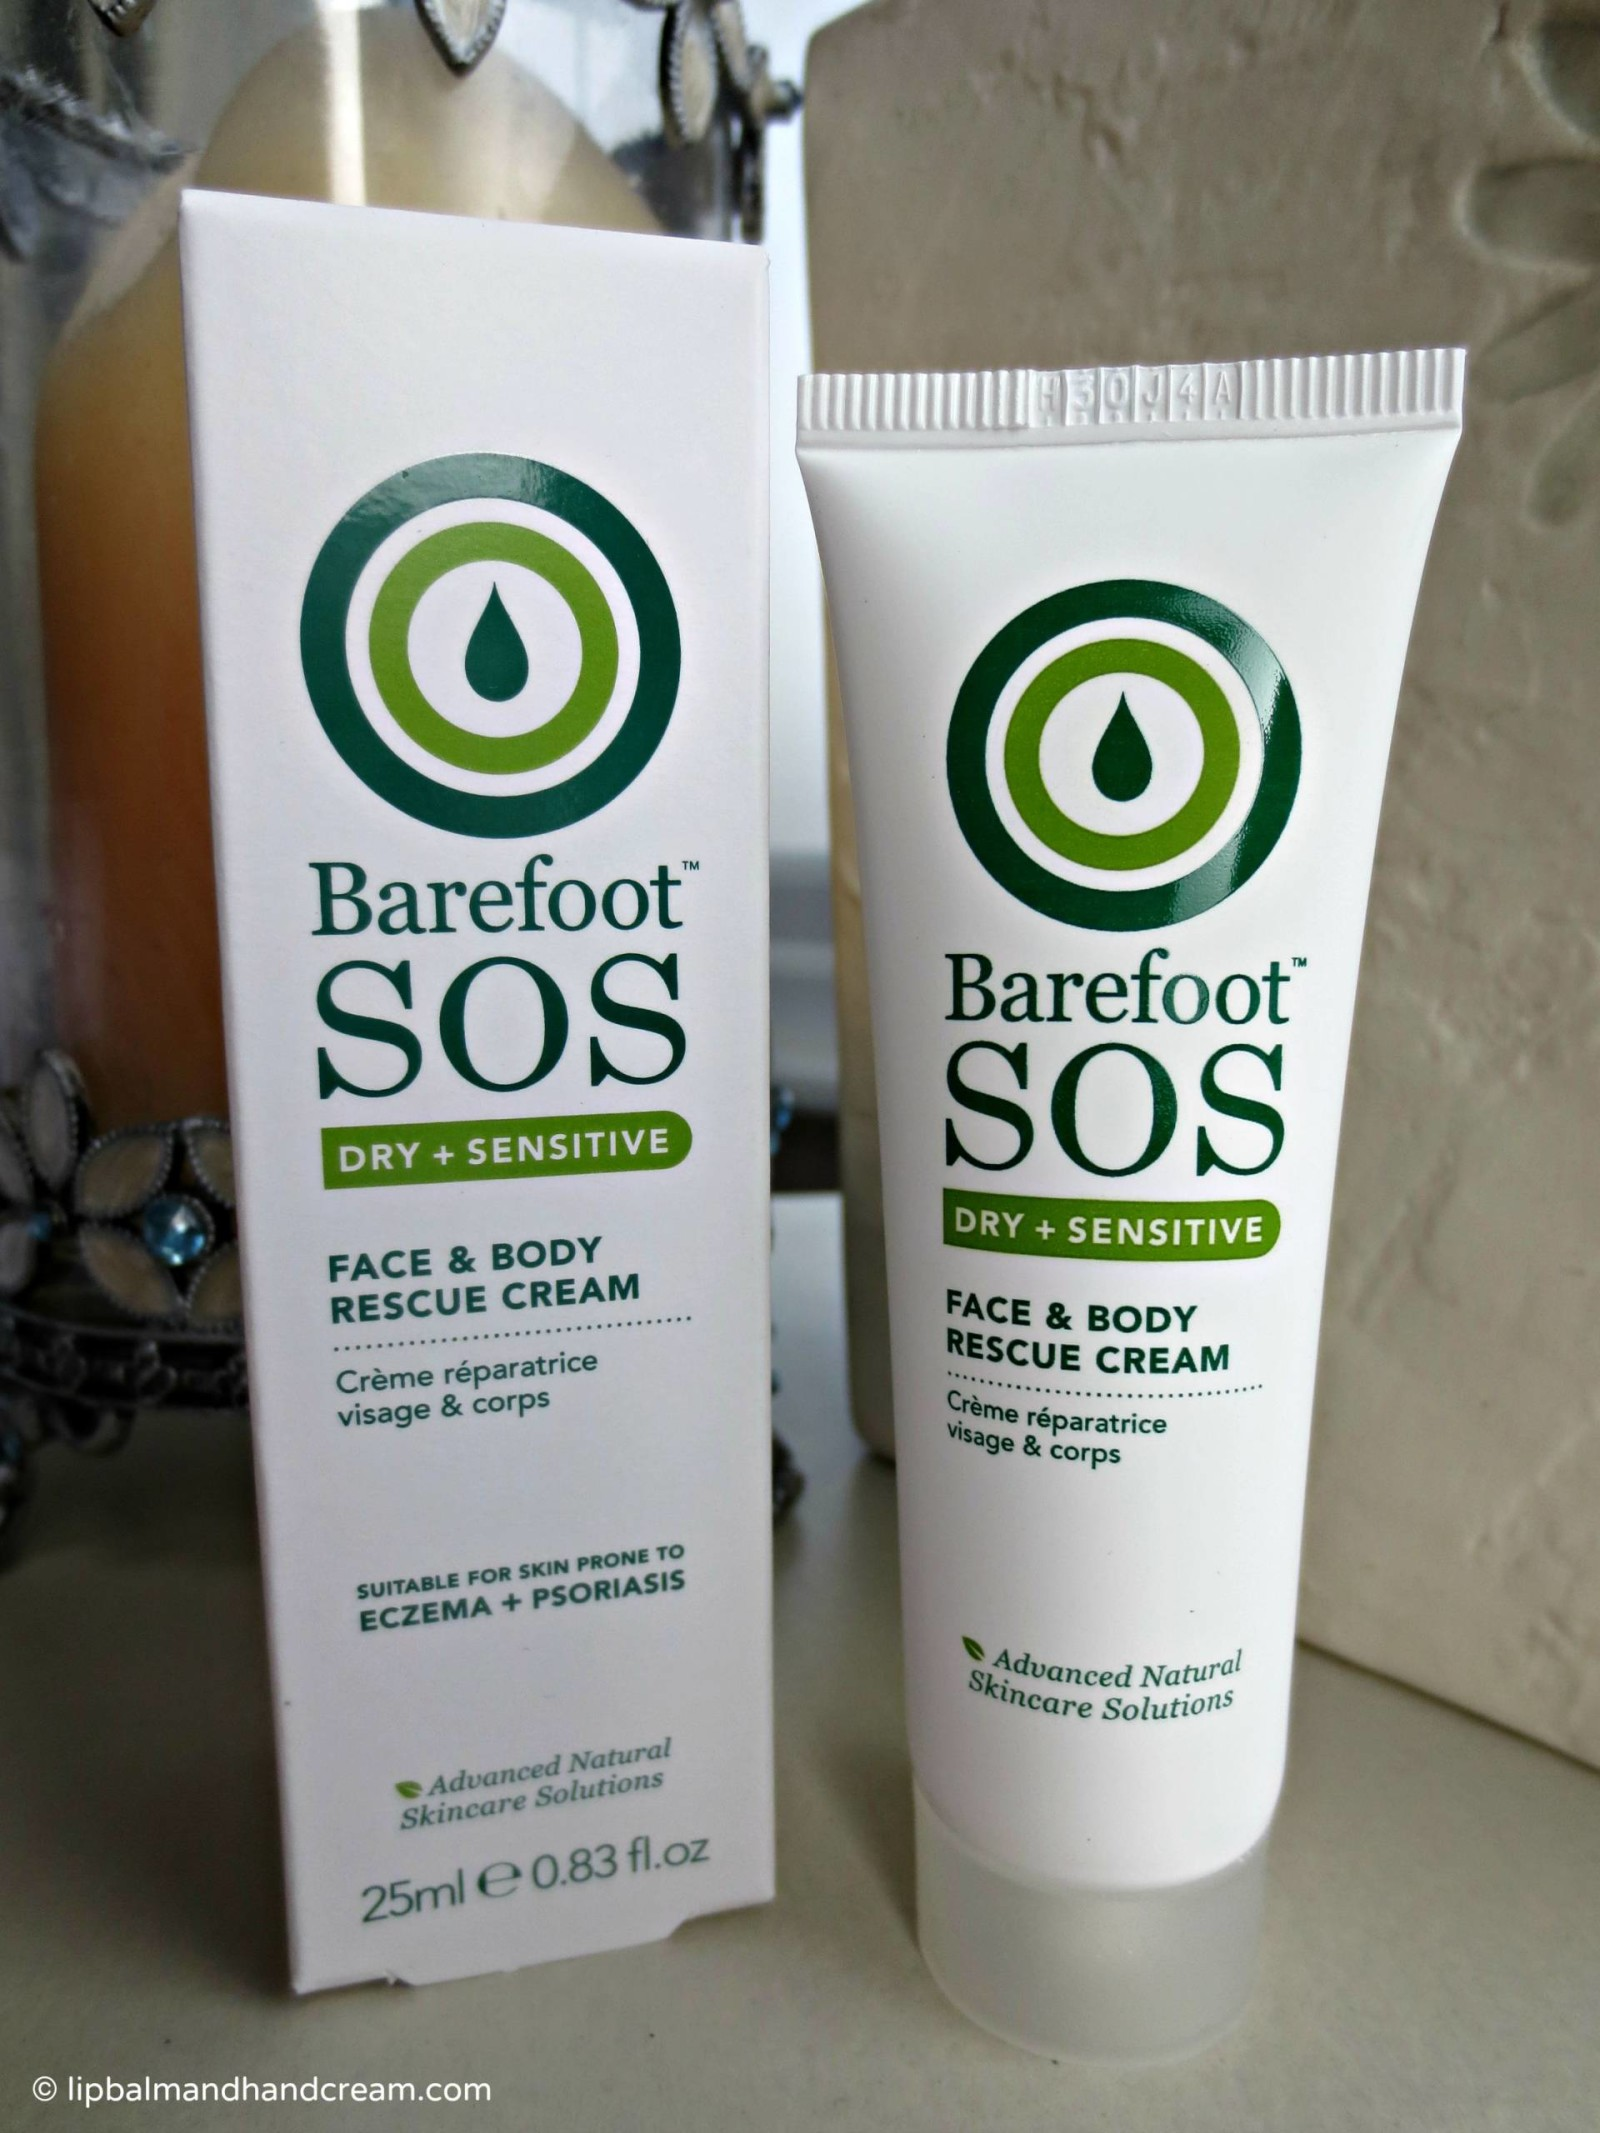 Barefoot SOS face & body rescue cream – for dry and sensitive skin